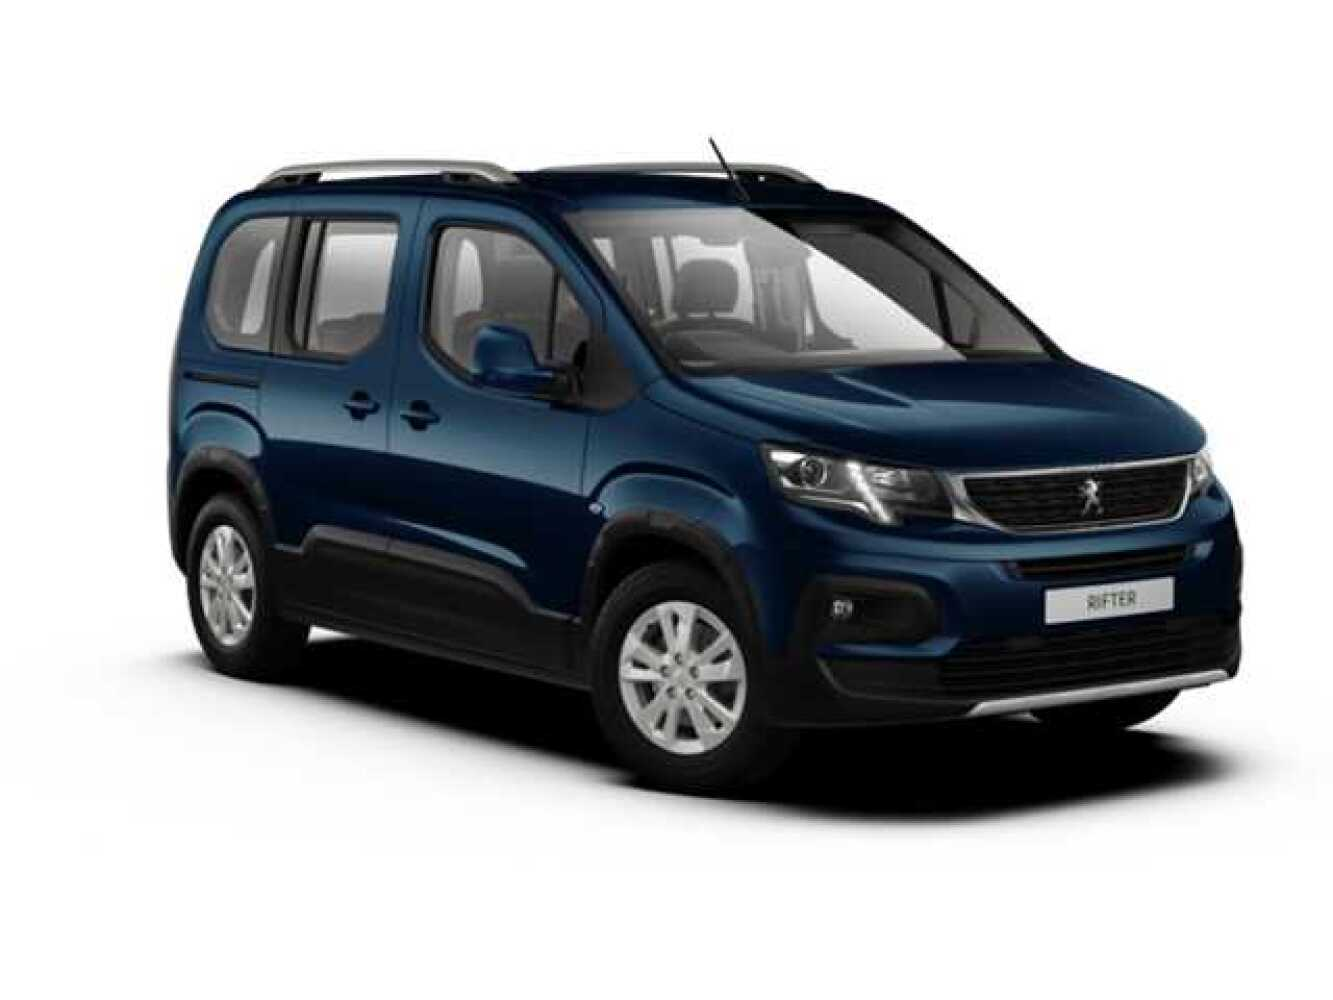 New Peugeot Rifter 1.5 BlueHDi 130 Allure 5dr EAT8 Diesel Estate for Sale | Bristol Street